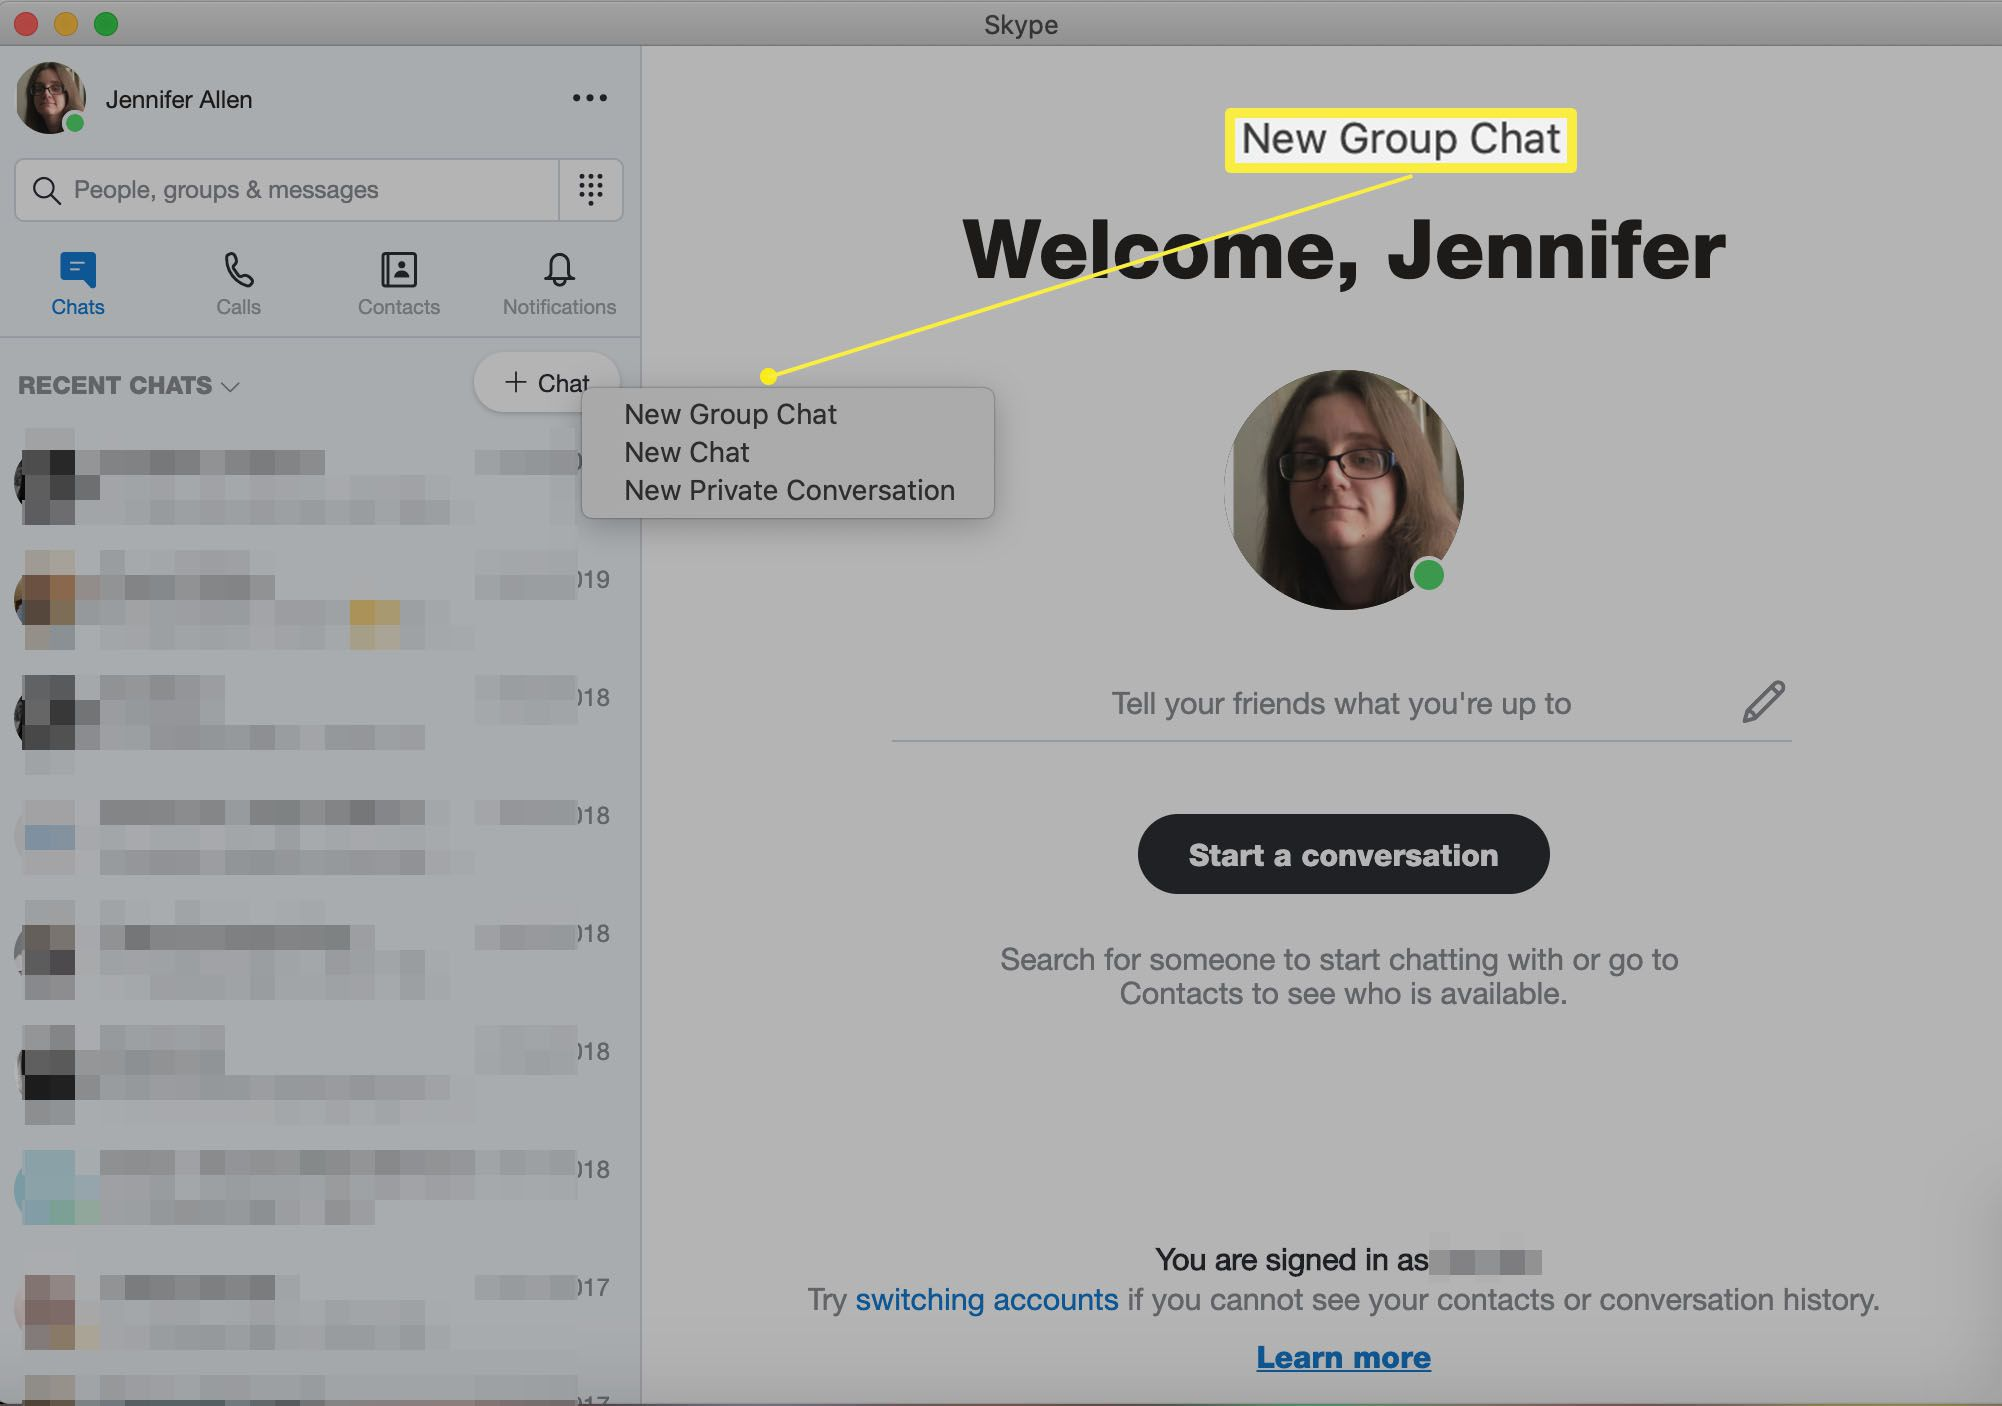 Skype with New Group Chat highlighted